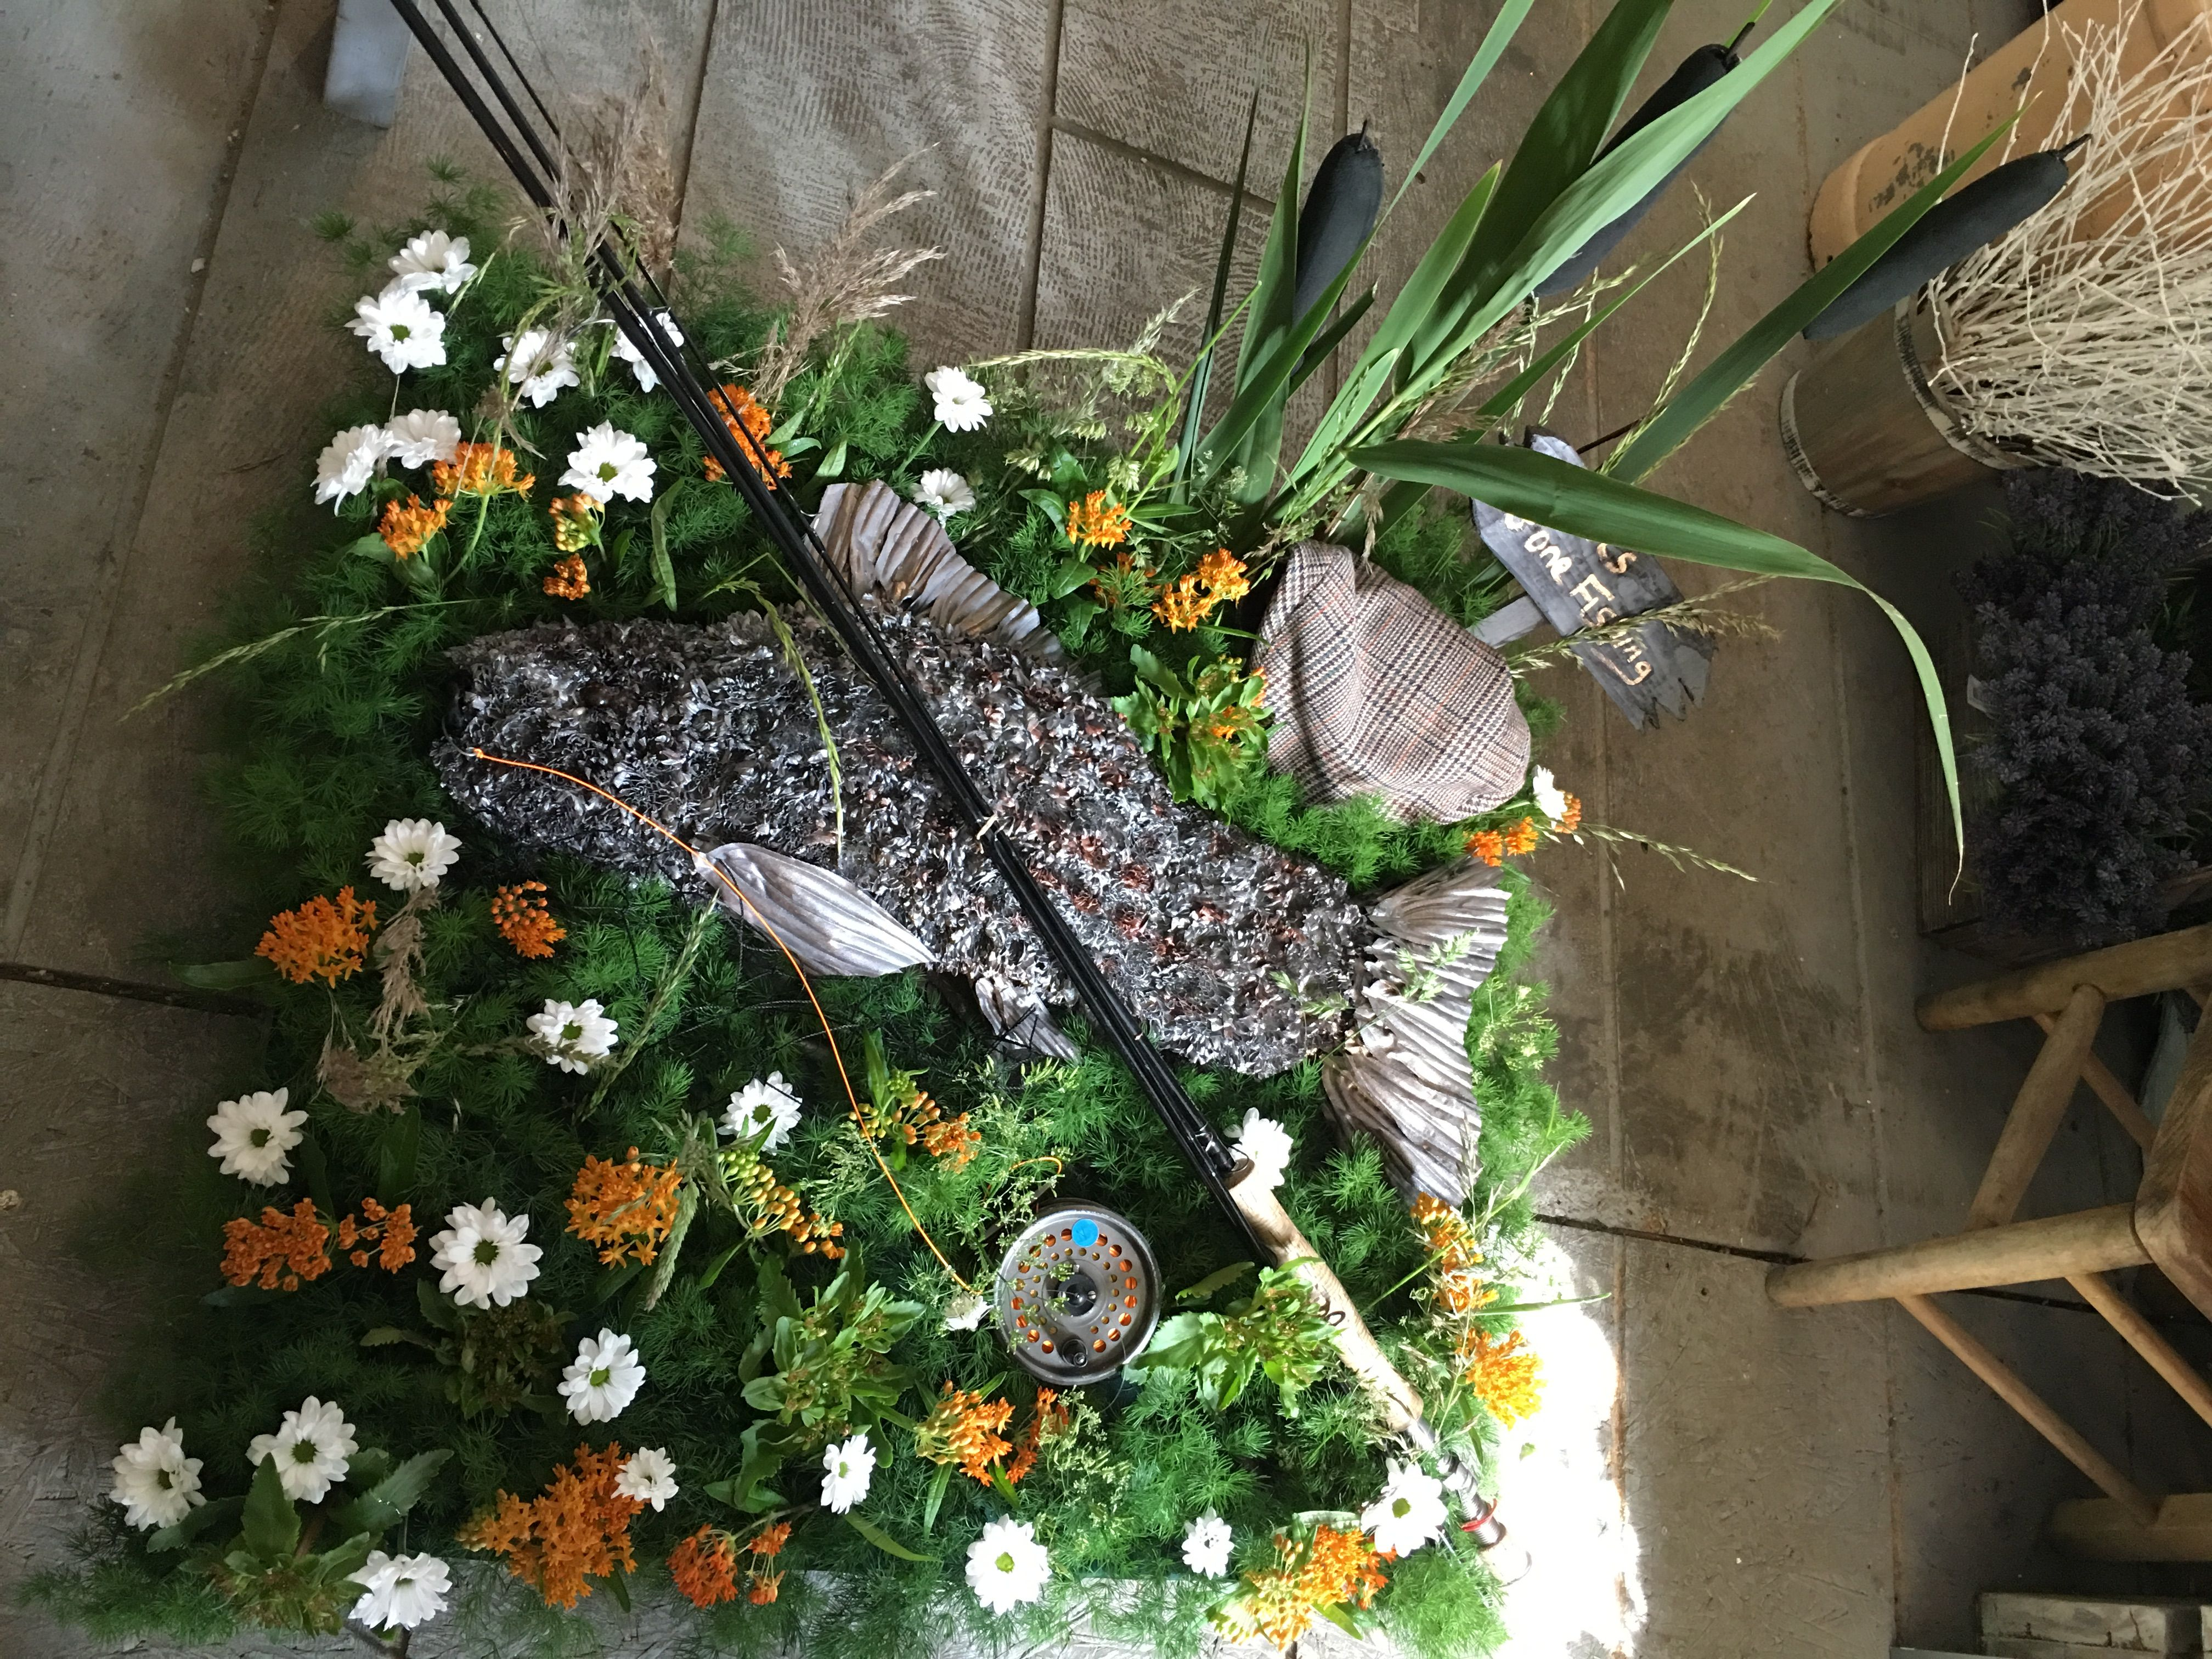 Funeral flowersfish on the river bed with reeds and flowers funeral flowersfish on the river bed with reeds and flowers fishing rod dhlflorist Choice Image